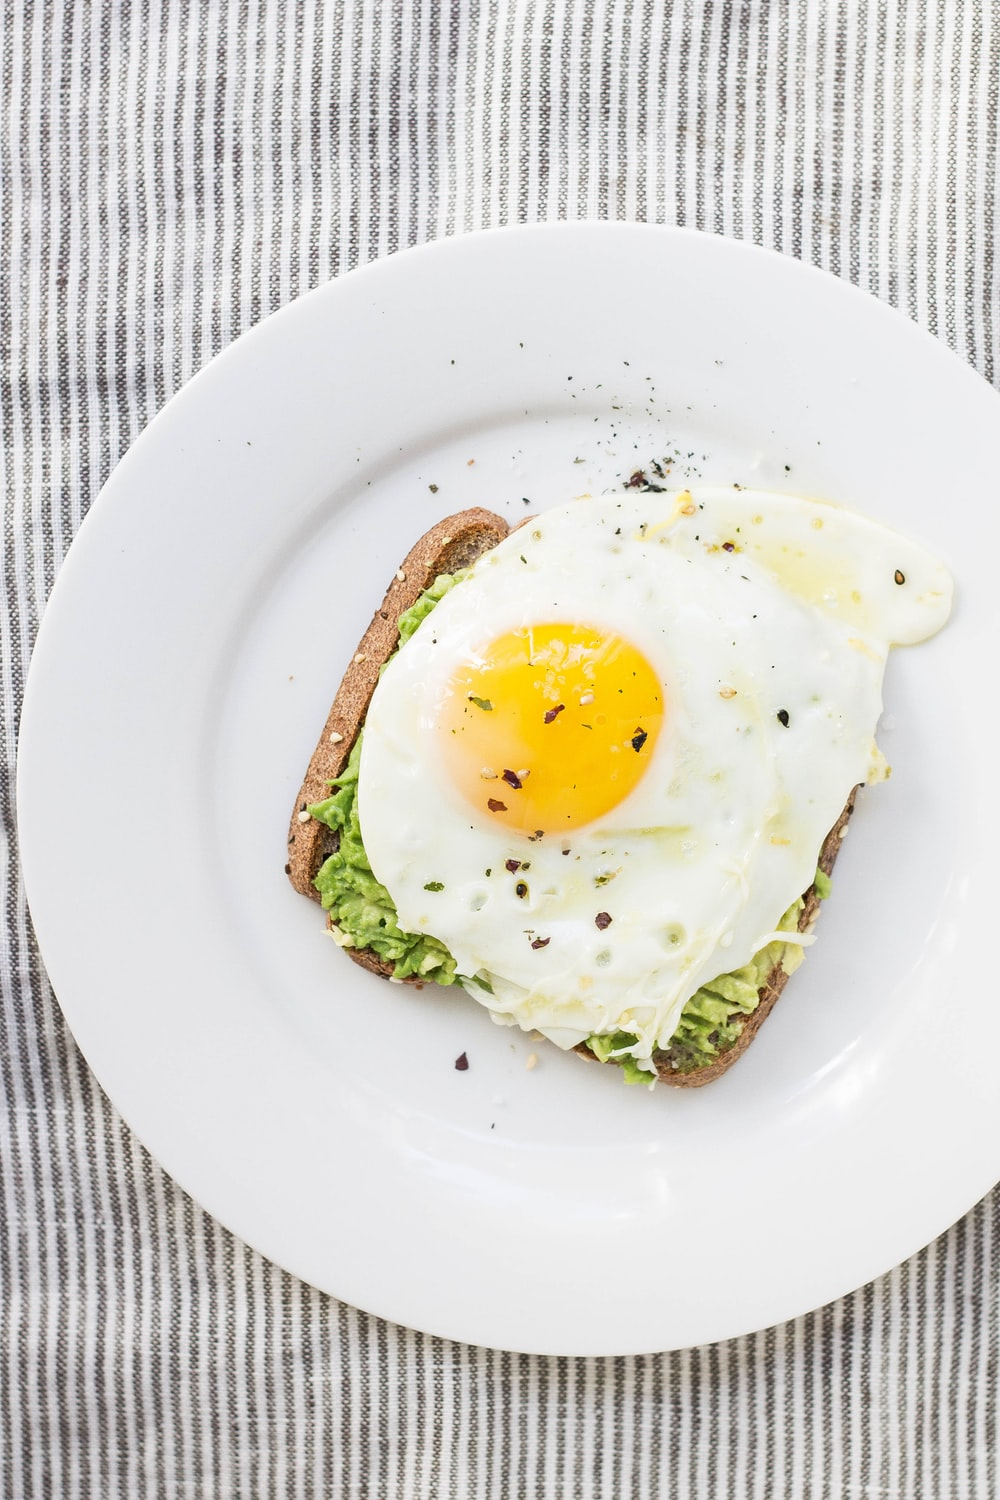 sunny side up egg, lettuce, bread on white ceramic plate